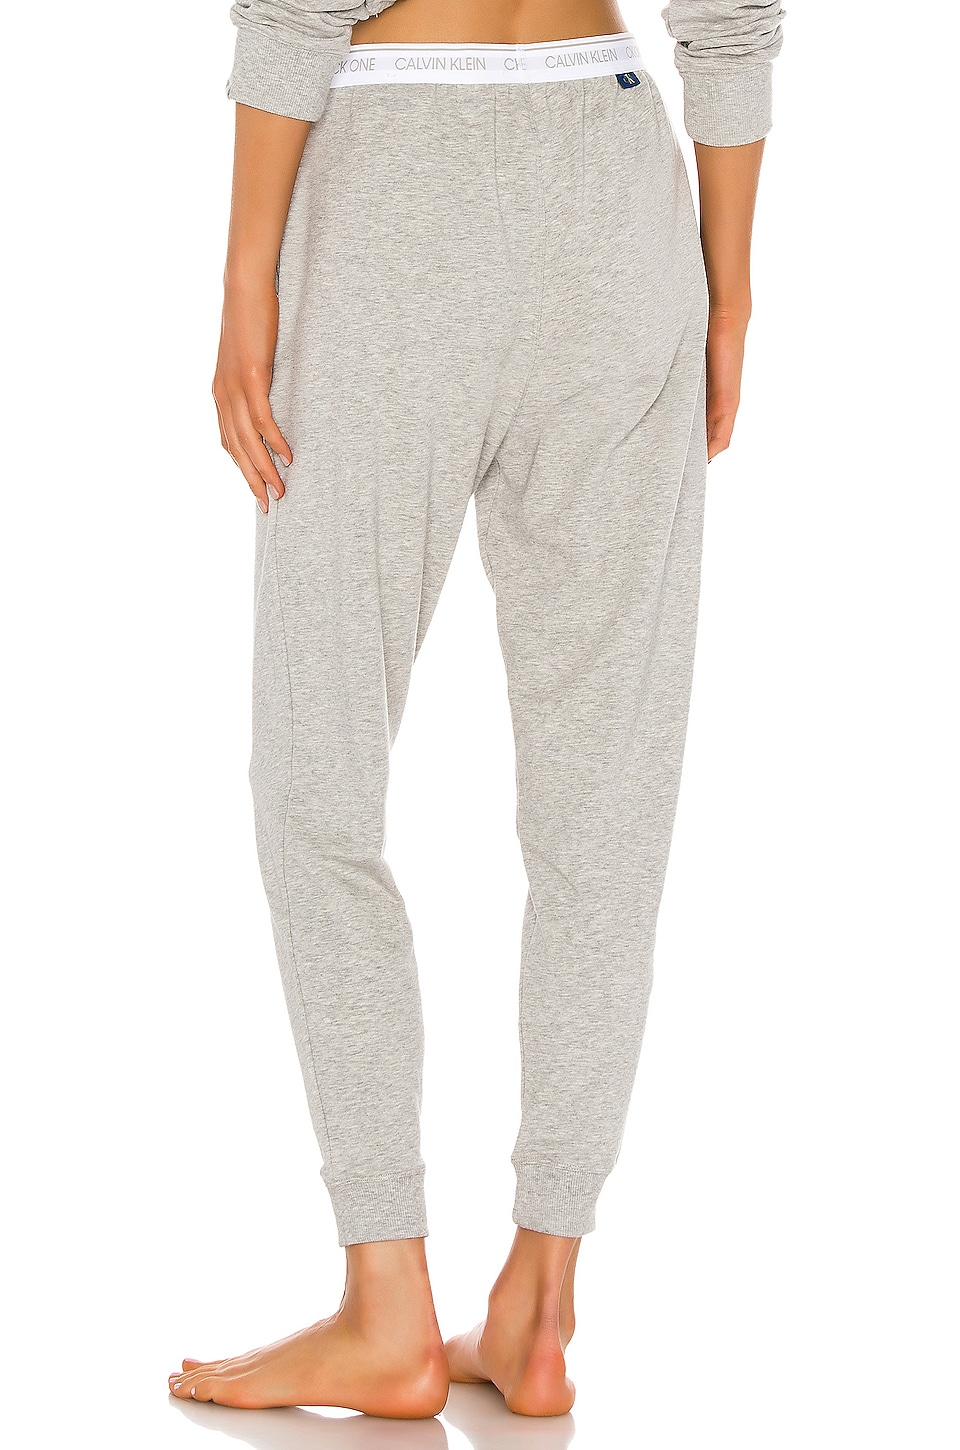 One Basic Lounge Sweatpant, view 3, click to view large image.